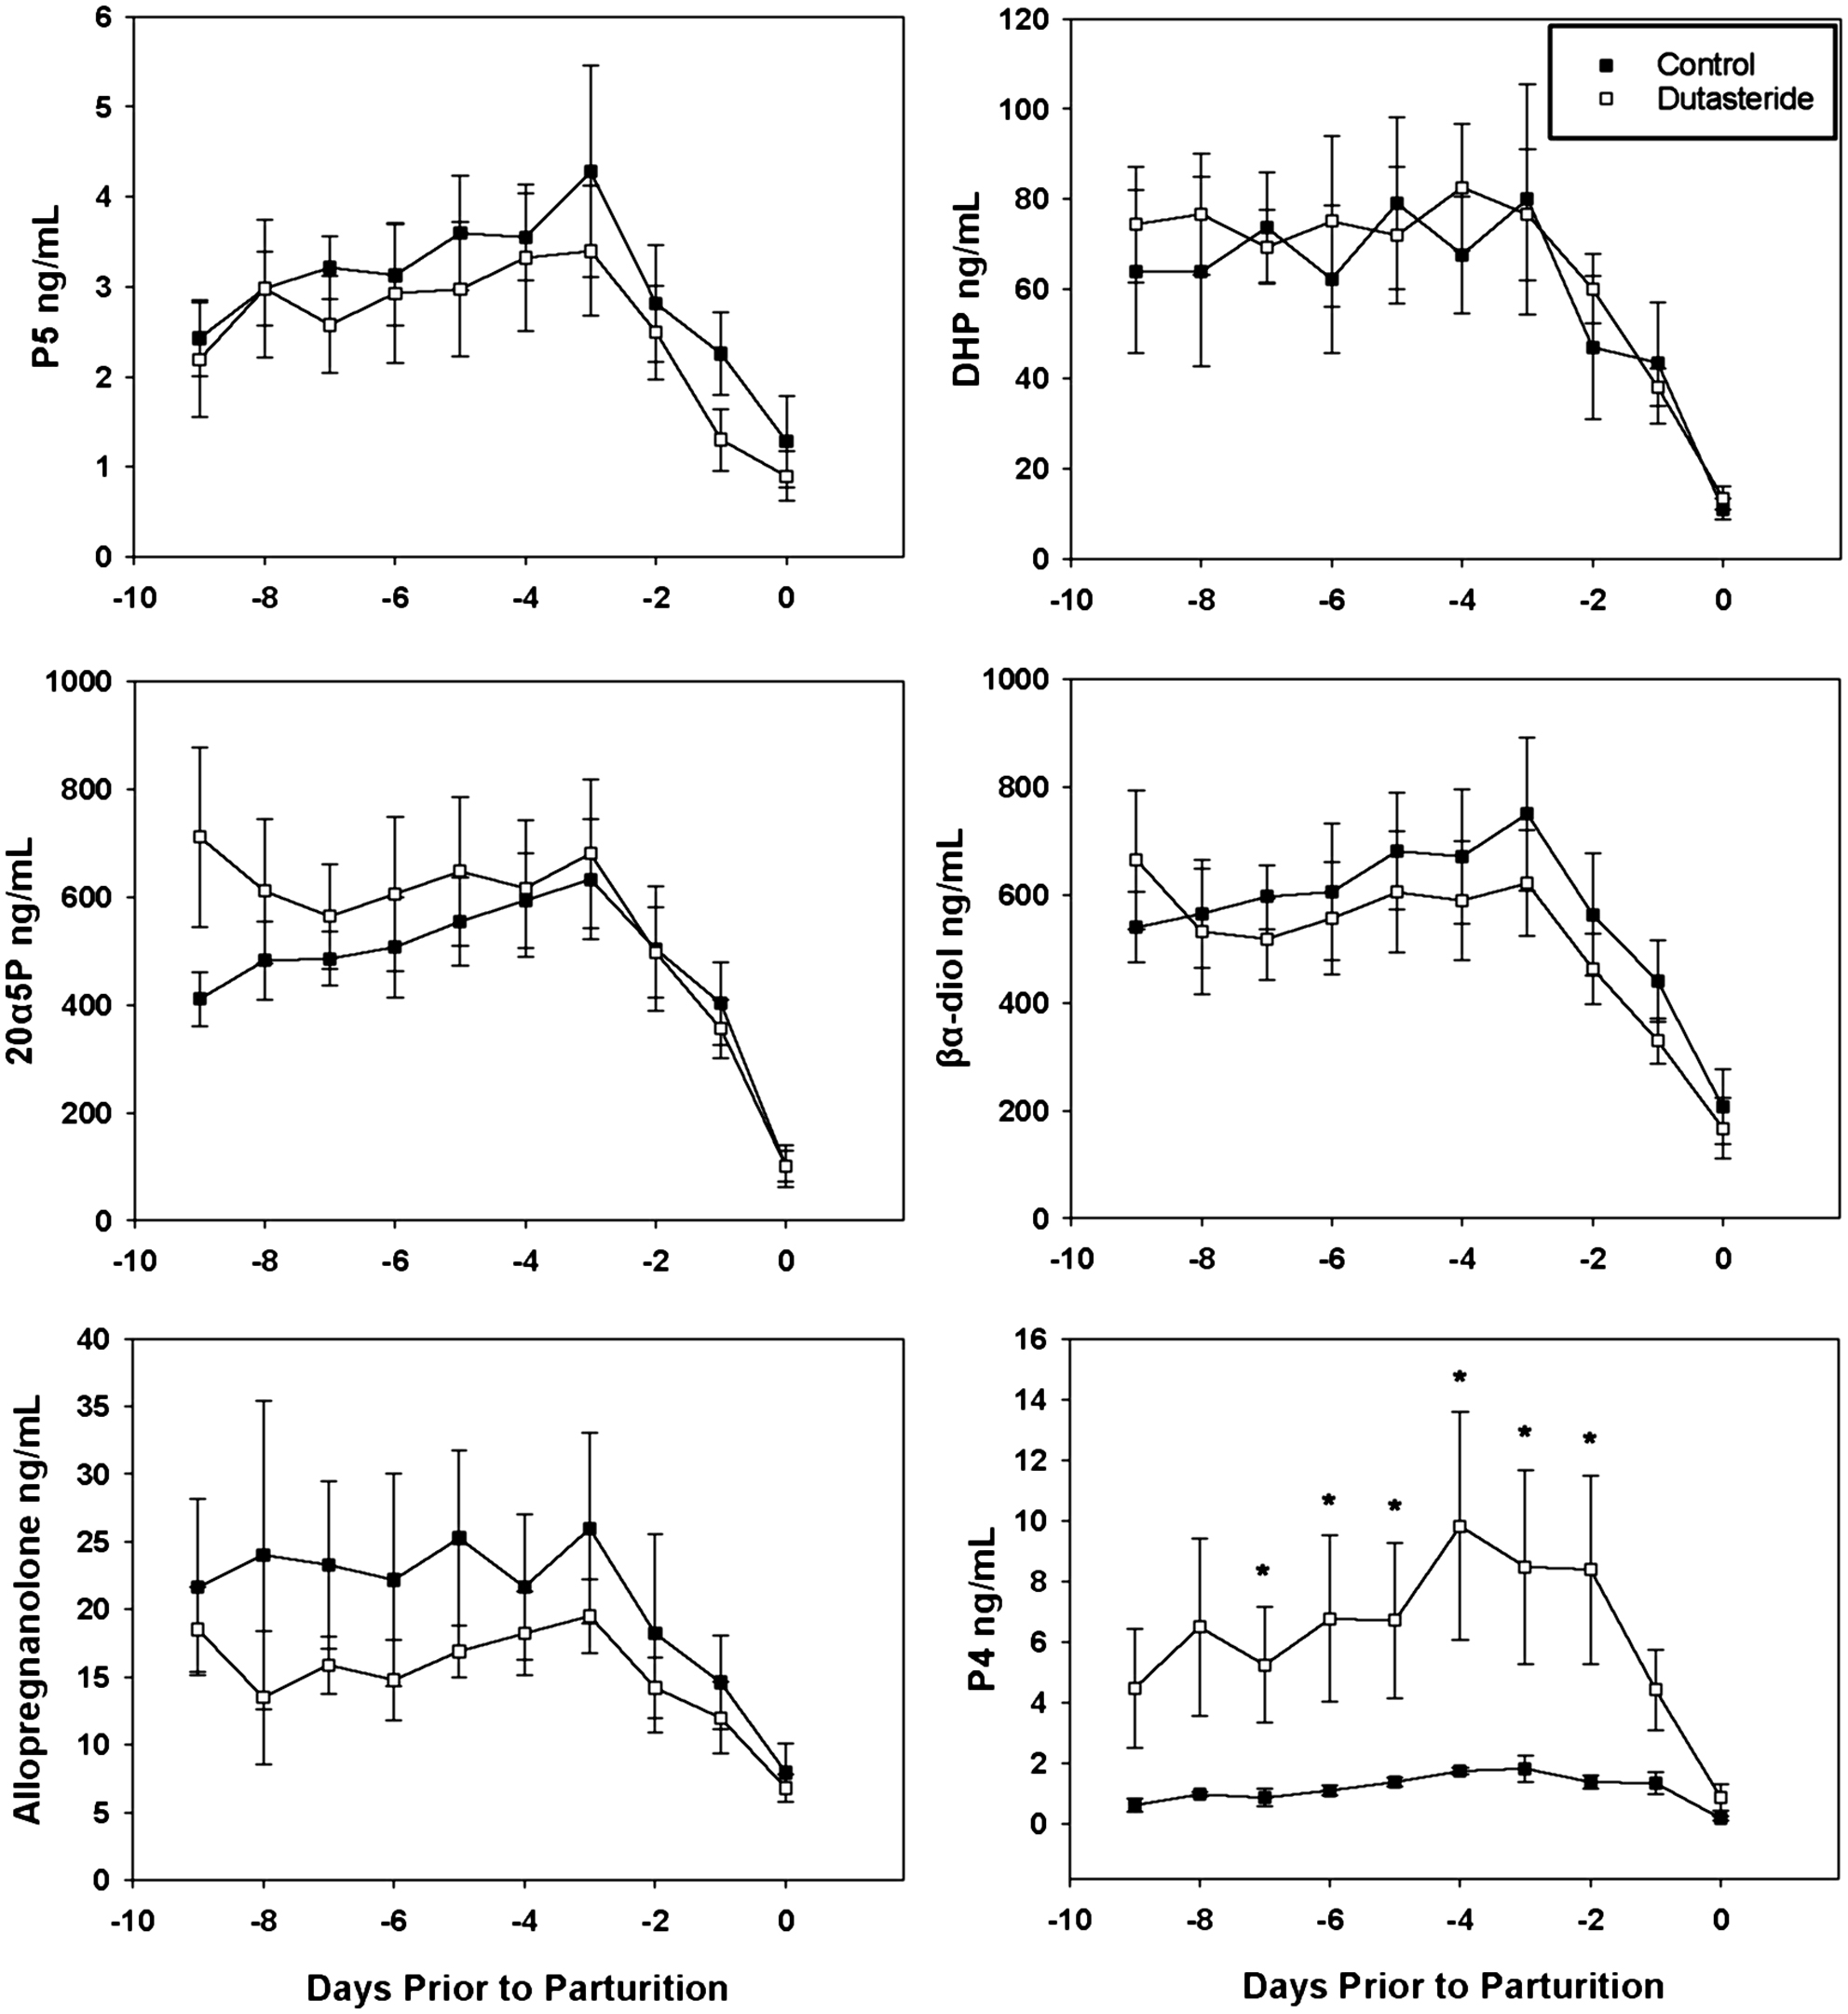 Inhibition of 5α-reductase alters pregnane metabolism in the